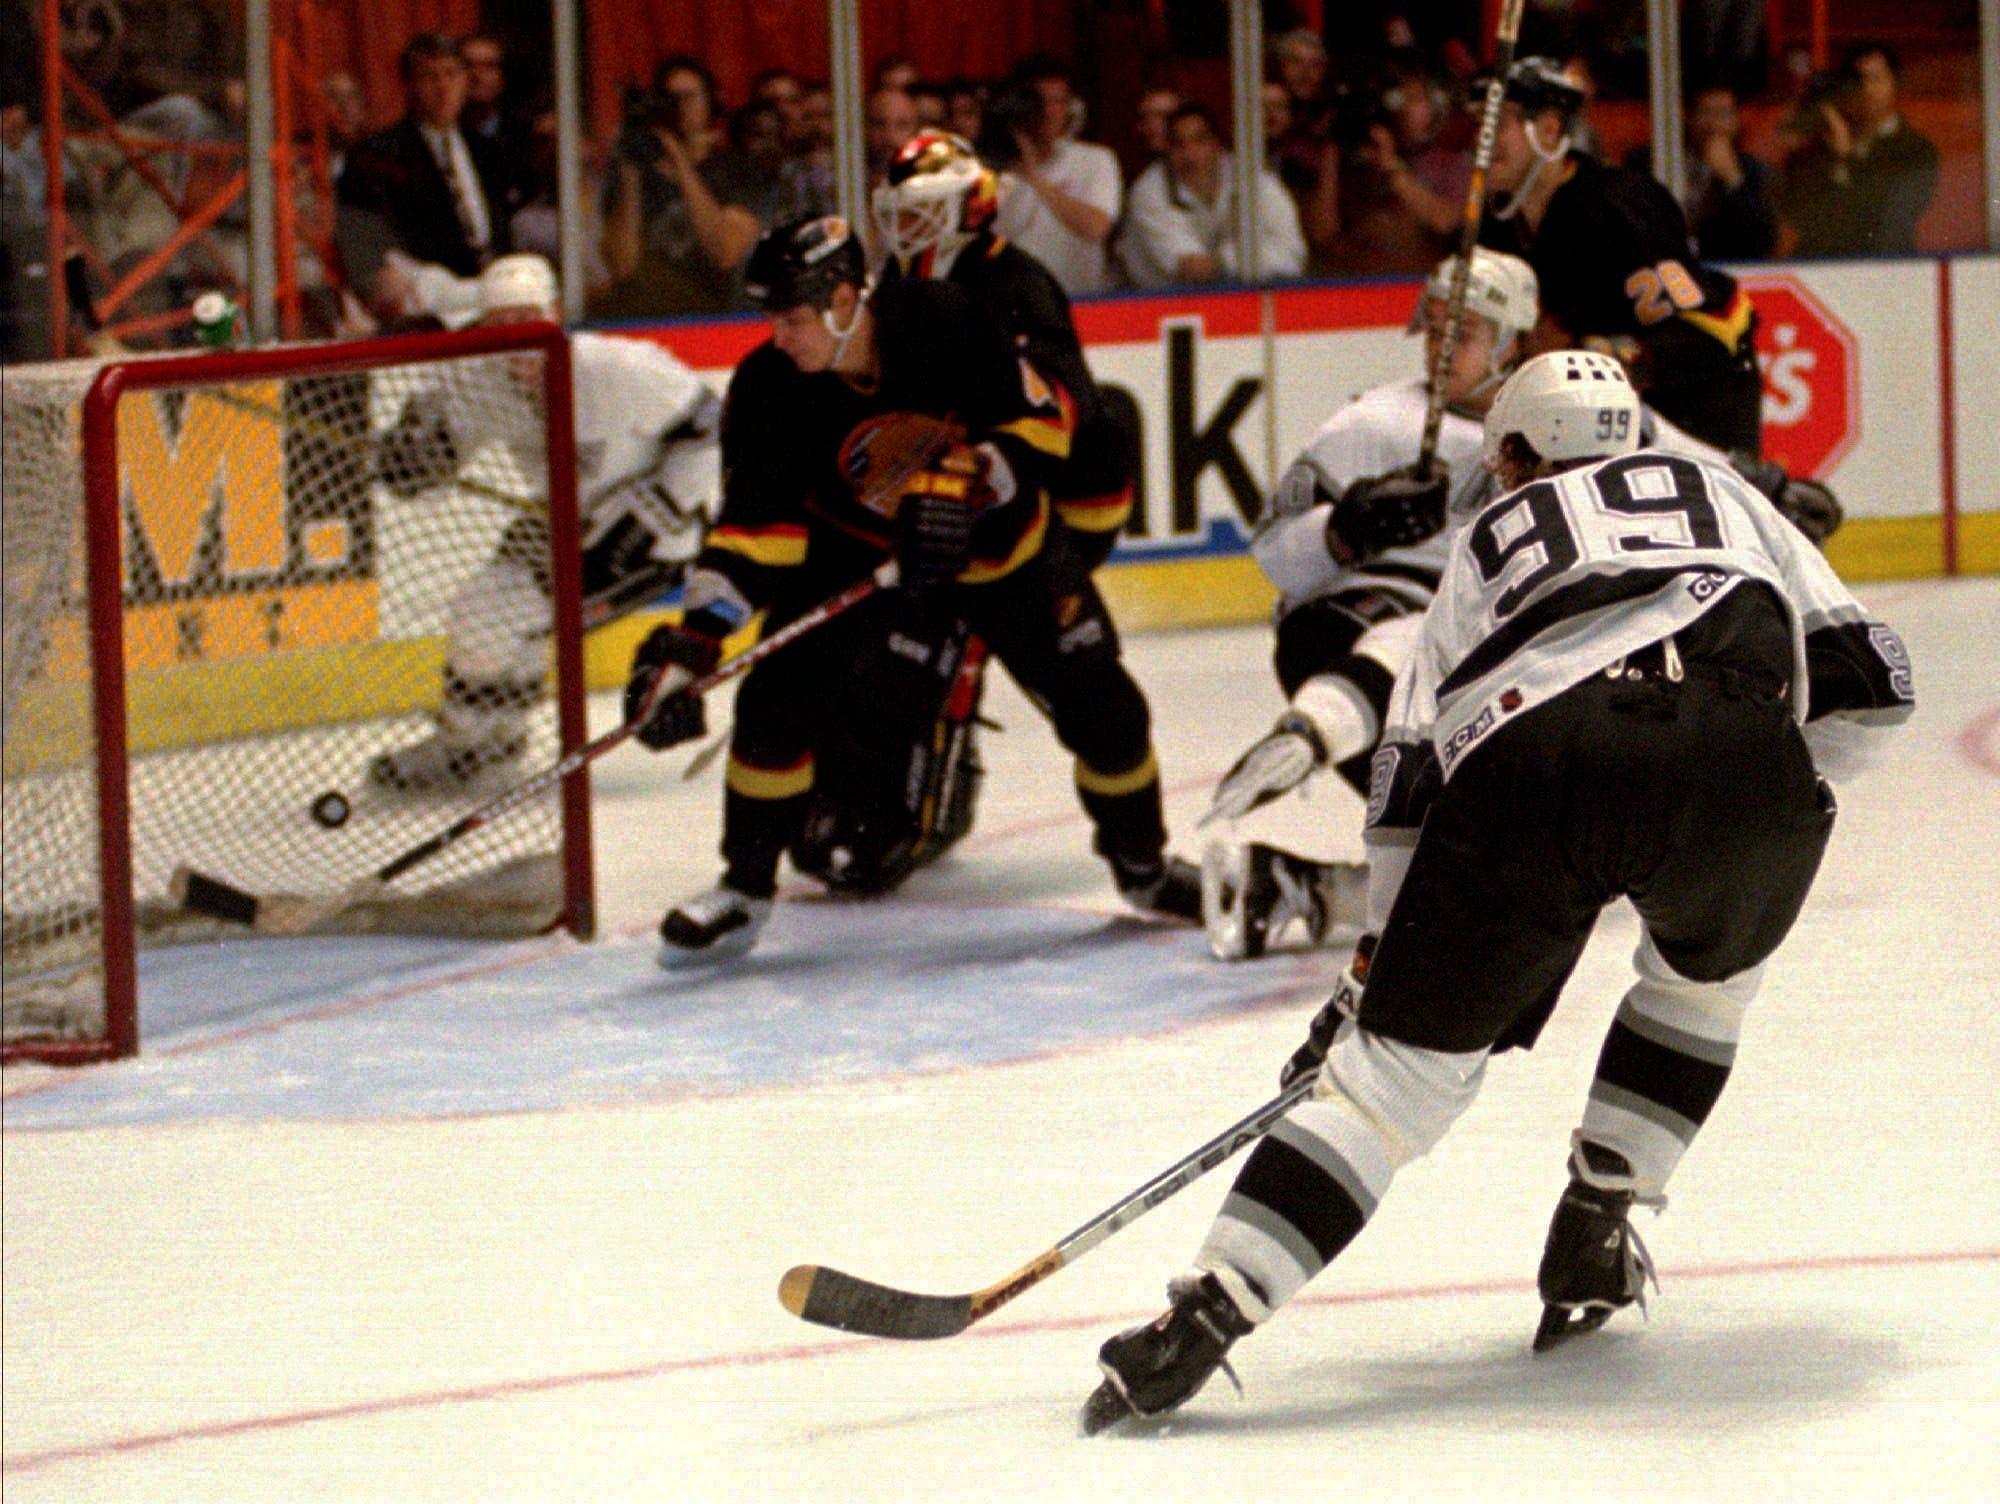 Gretzky also broke Gordie Howe's goal record while a member of the Kings in March 1994.